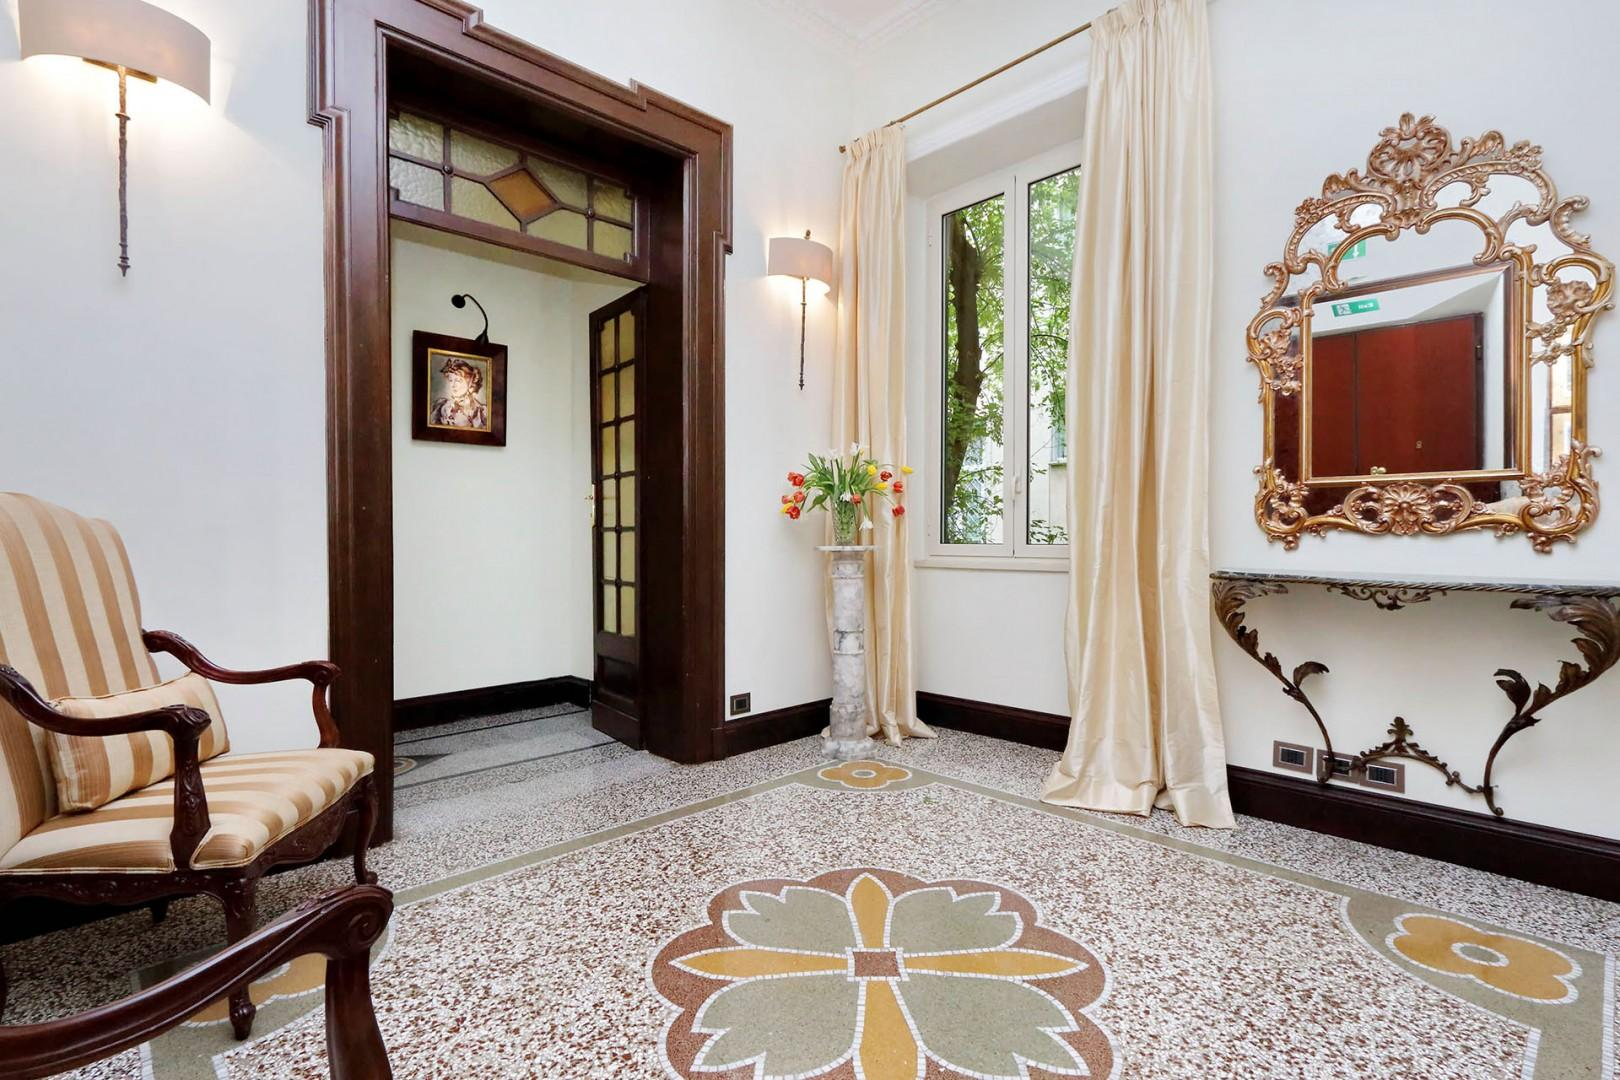 The apartment's gracious entry foyer welcomes you to this spacious, luxury apartment.